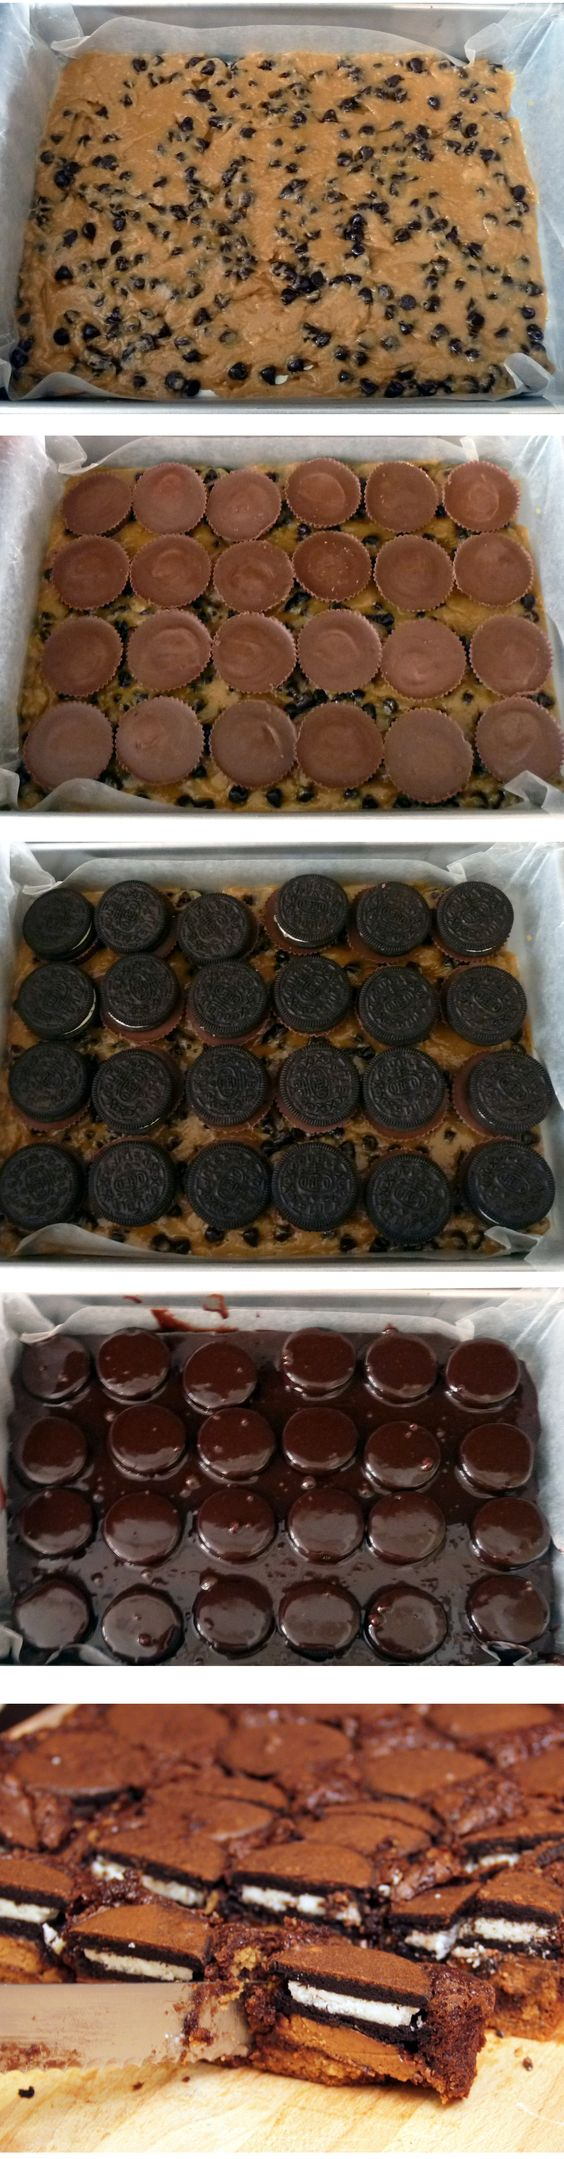 Omg this just took slutty brownies to a whole new level!- my mouth is watering so bad